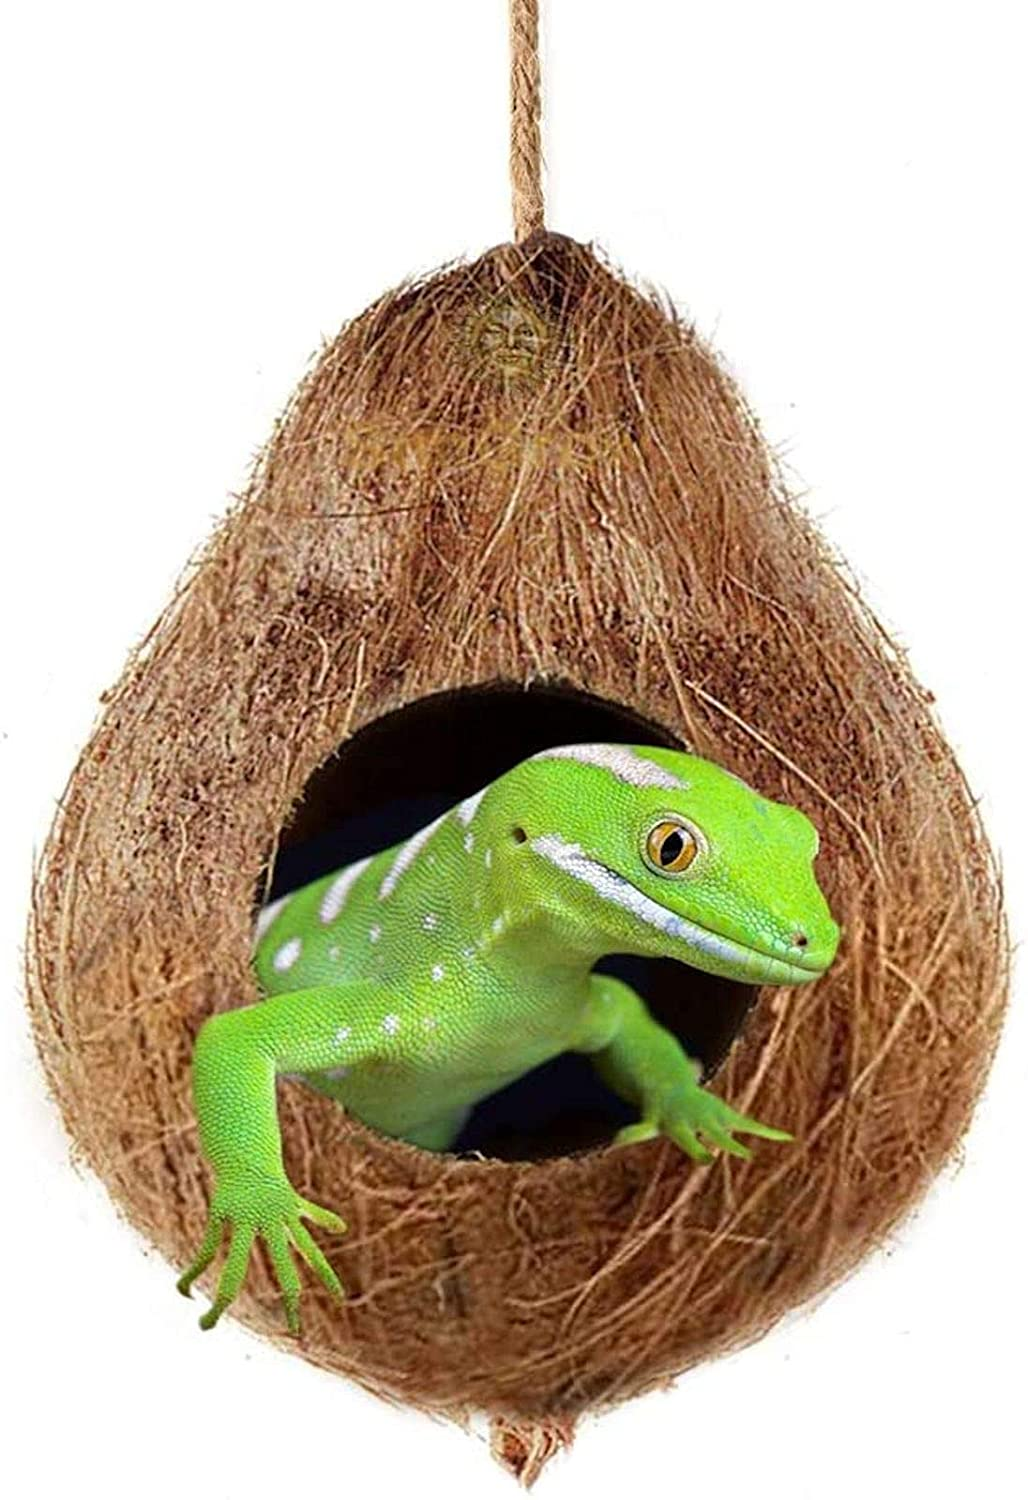 "Crested Gecko Coco Hut , Treat & Food Dispenser, Sturdy Hanging Home, Climbing Porch, Hiding, Sleeping & Breeding Pad, 4.5"" Round Coconut Shell with 2.5"" Opening, Ideal for Reptiles, Amphibians"